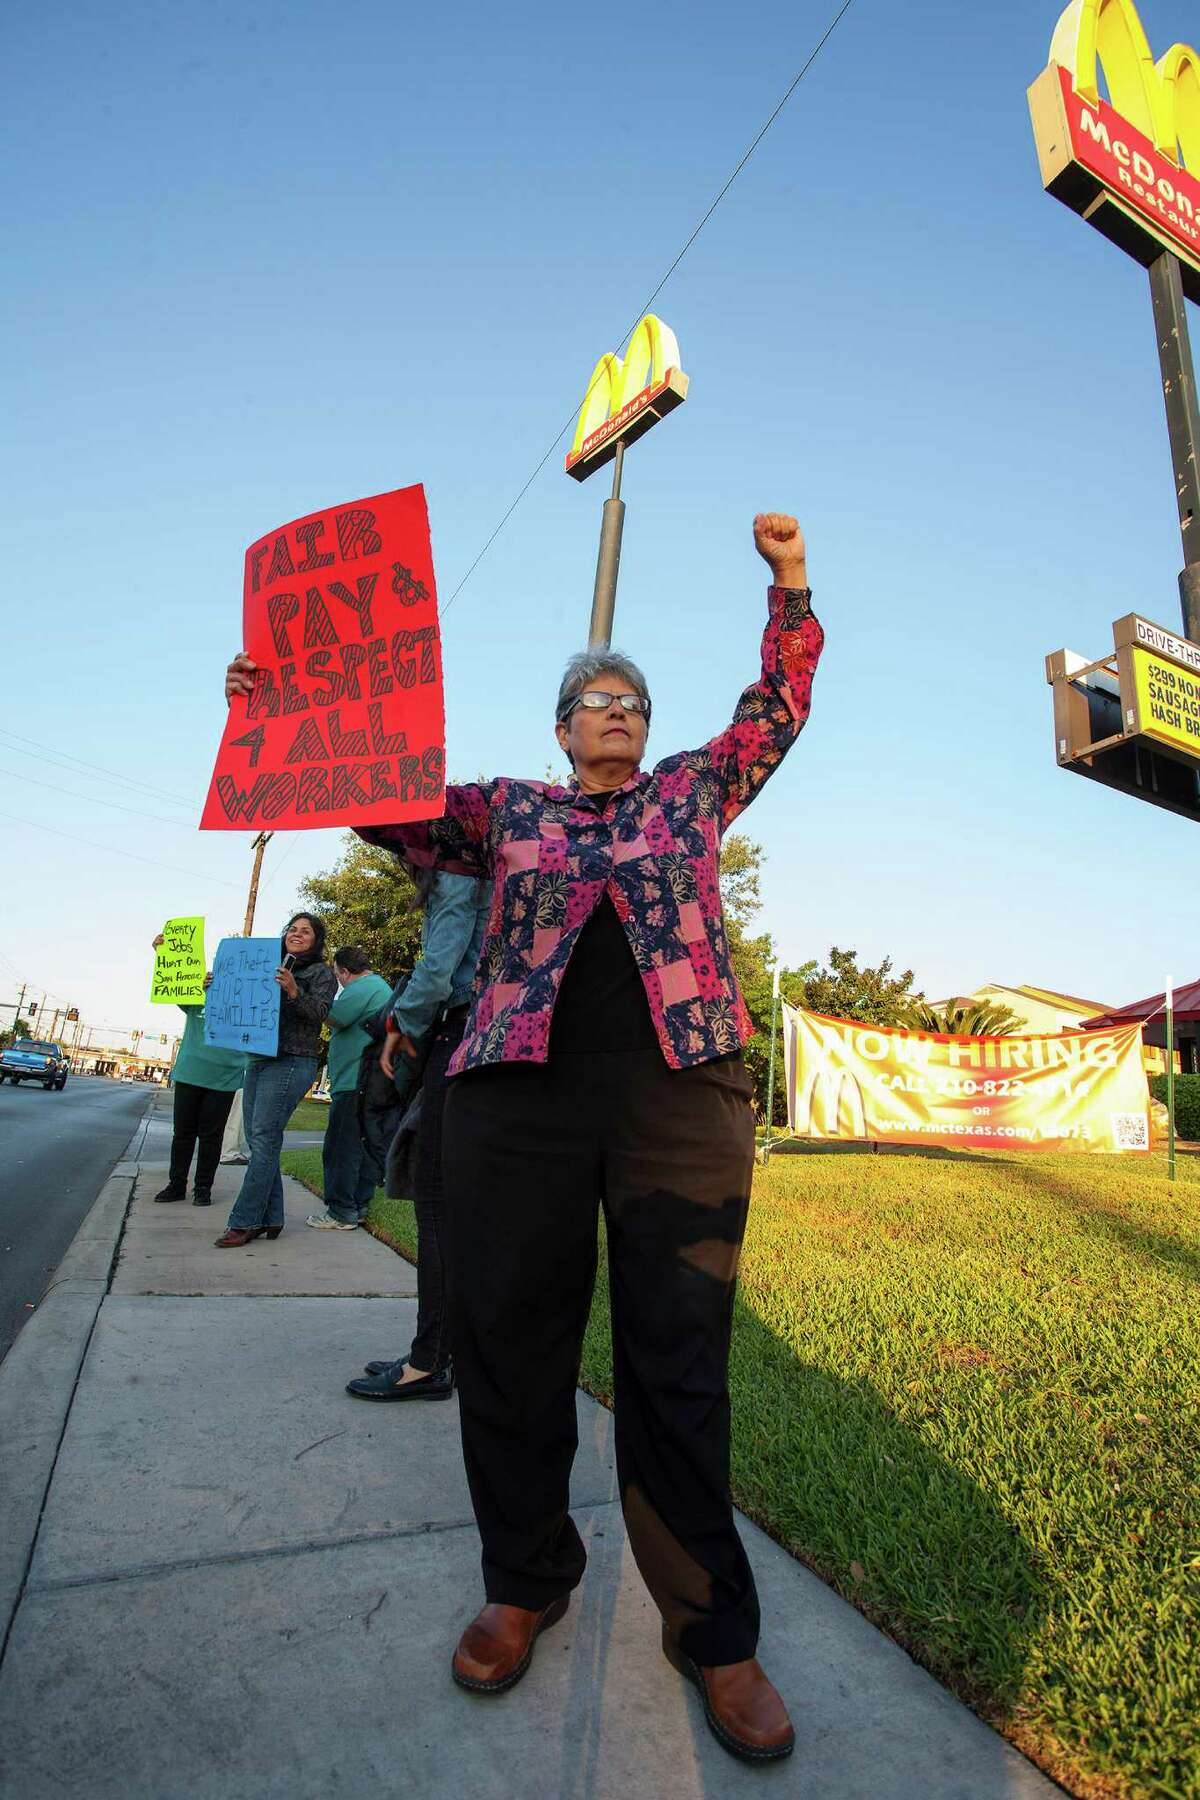 Irasema Cavazos is among the labor activists and fast food workers staging a protest calling for a $15 minimum wage and the right of fast food workers to form a union, outside a McDonald's in the 8600 block of Broadway, early Thursday, May 15, 2014 in San Antonio.